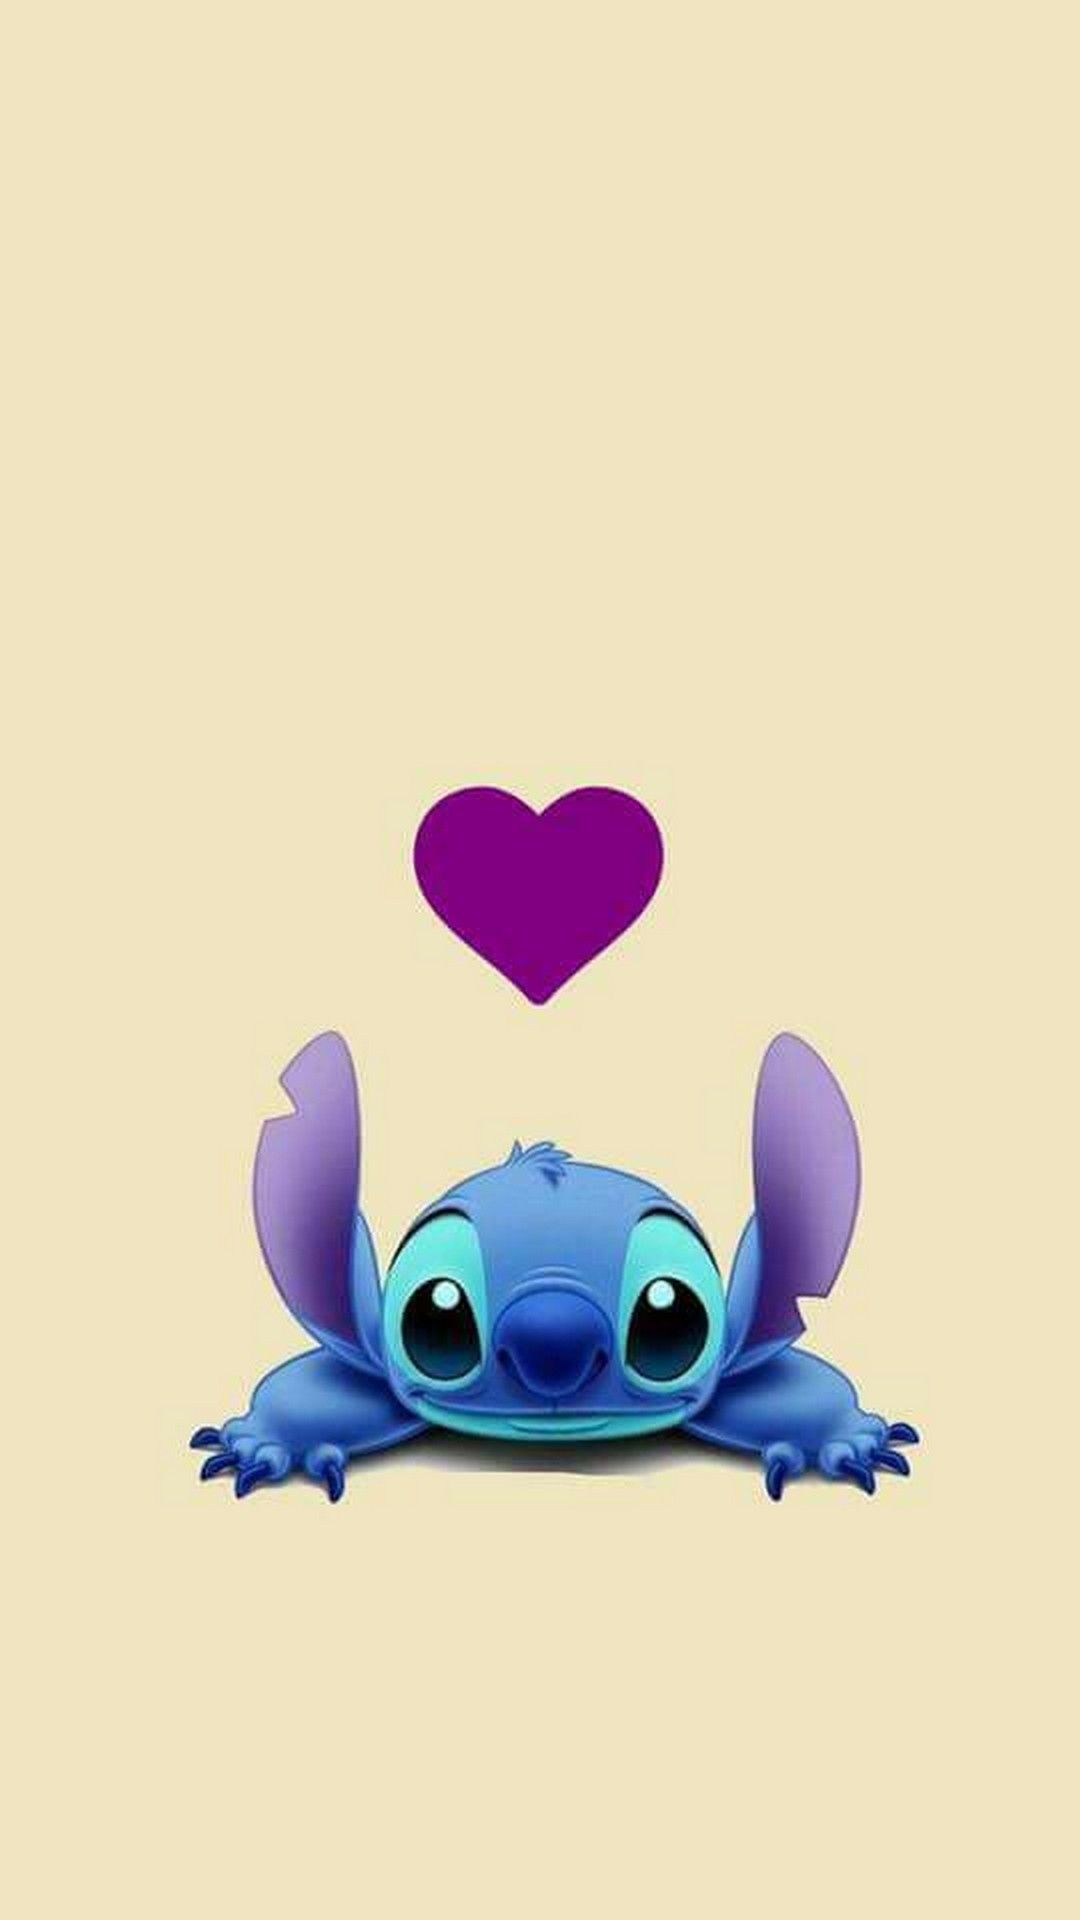 1080x1920 Stitch iPhone Wallpaper HD is best high definition wallpaper image ...